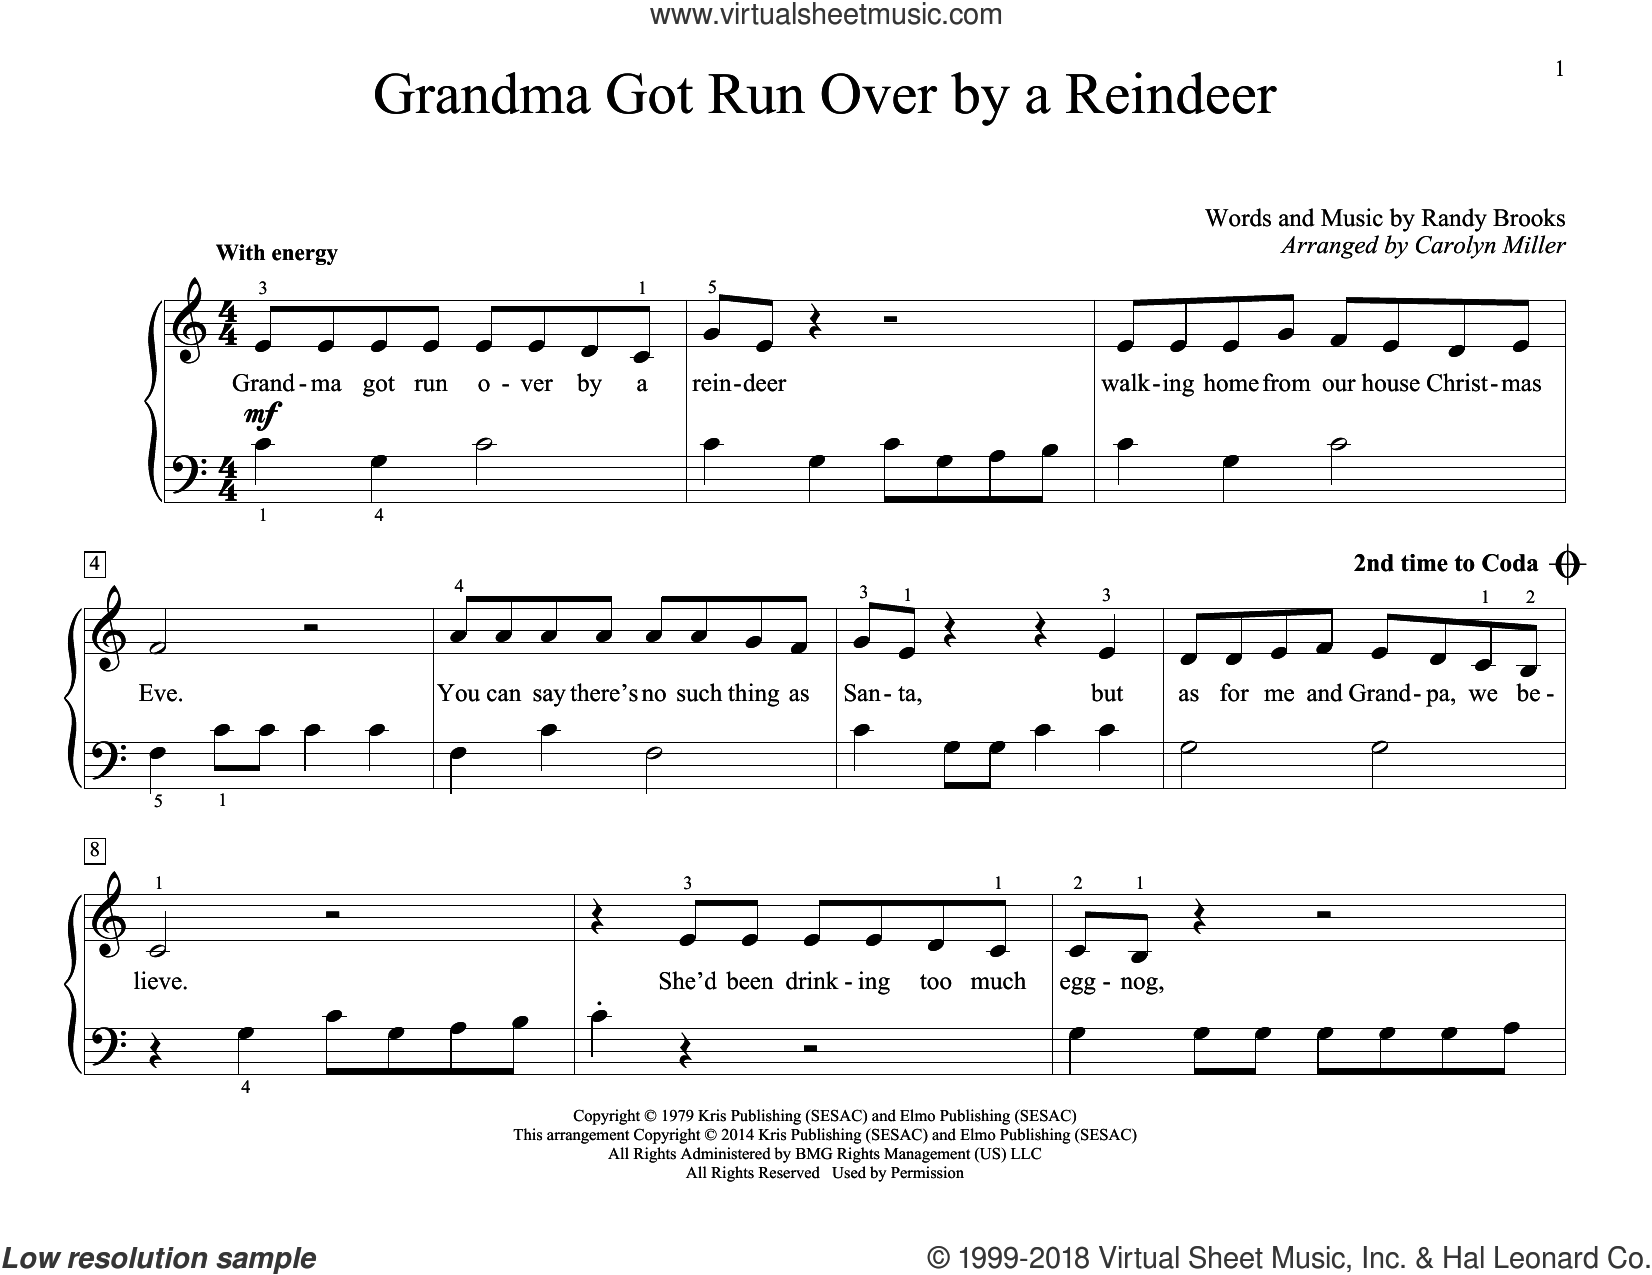 Grandma Got Run Over By A Reindeer sheet music for piano solo (elementary) by Randy Brooks, Carolyn Miller and John Thompson. Score Image Preview.